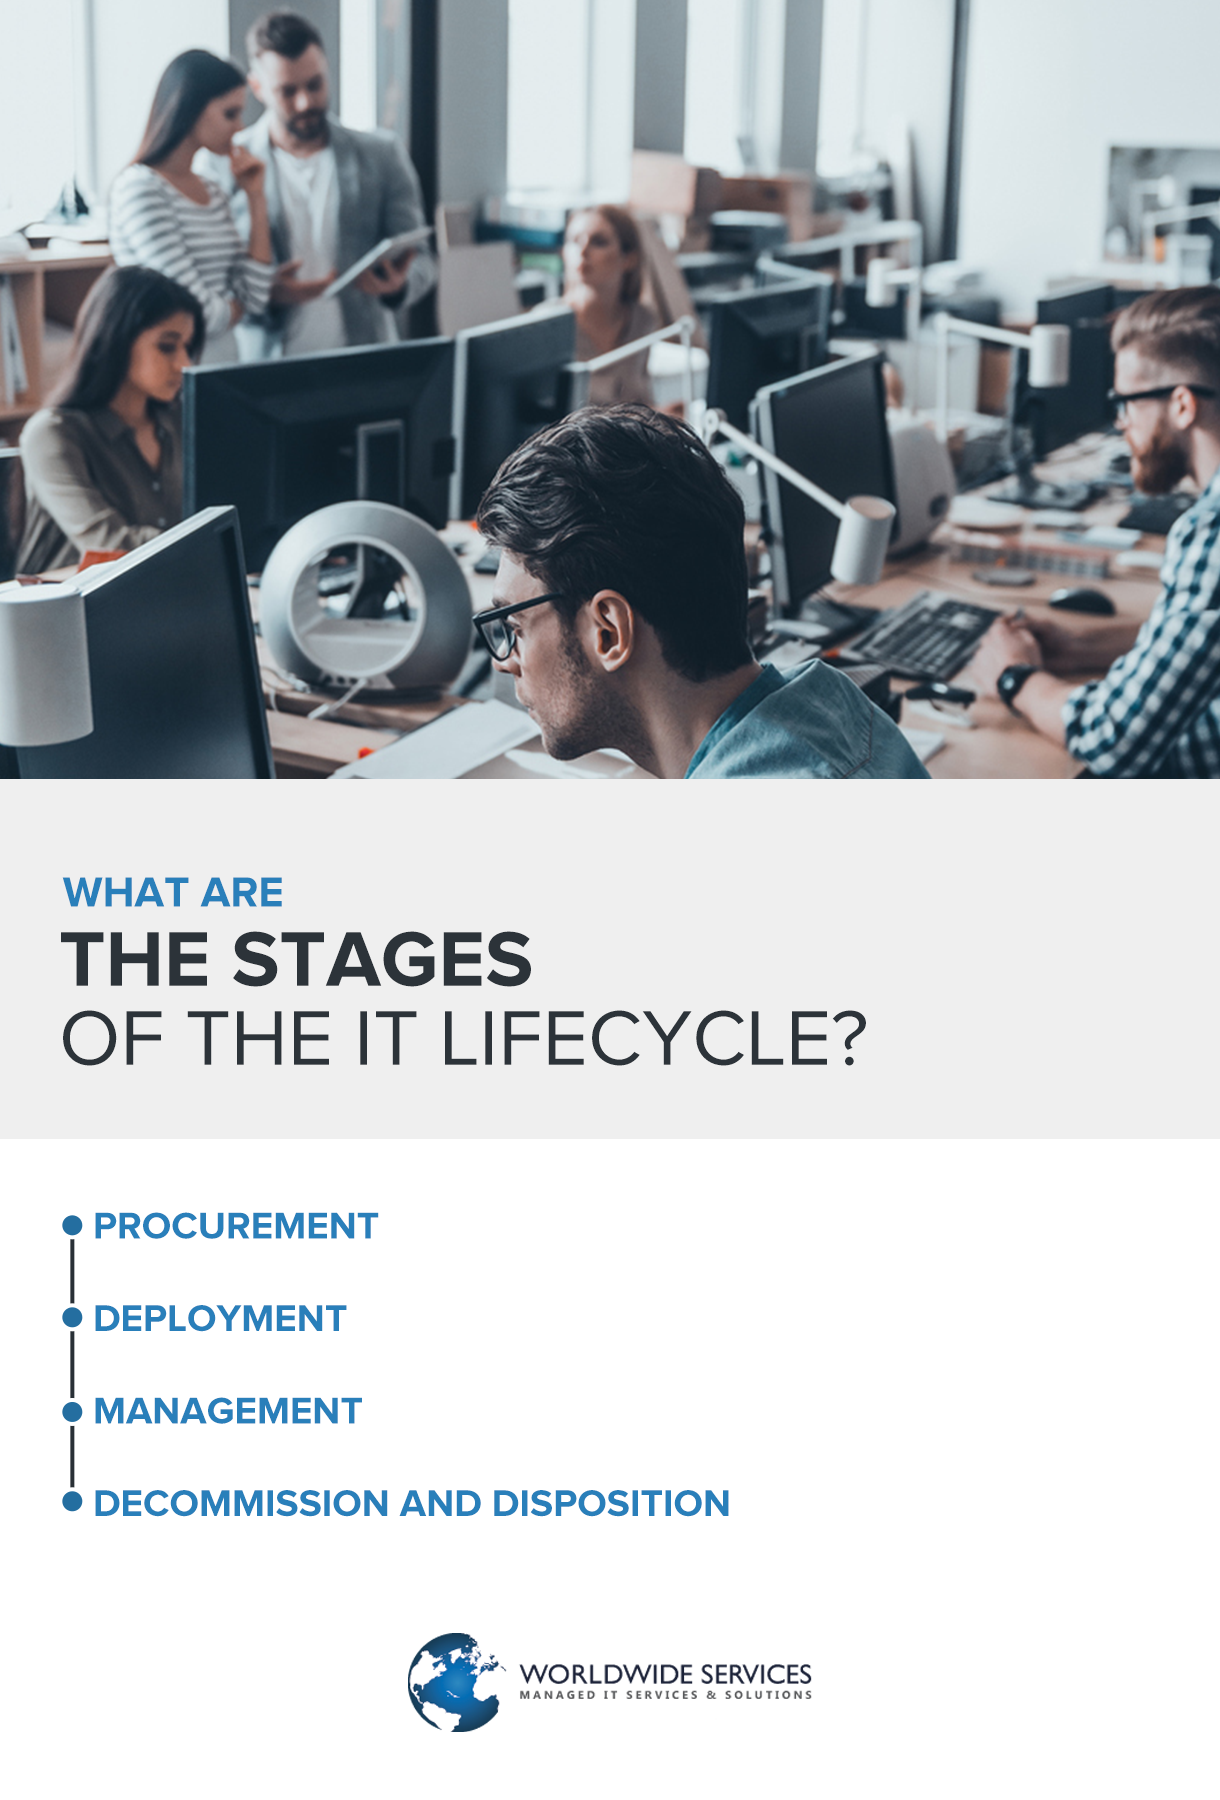 stages of the IT lifecycle